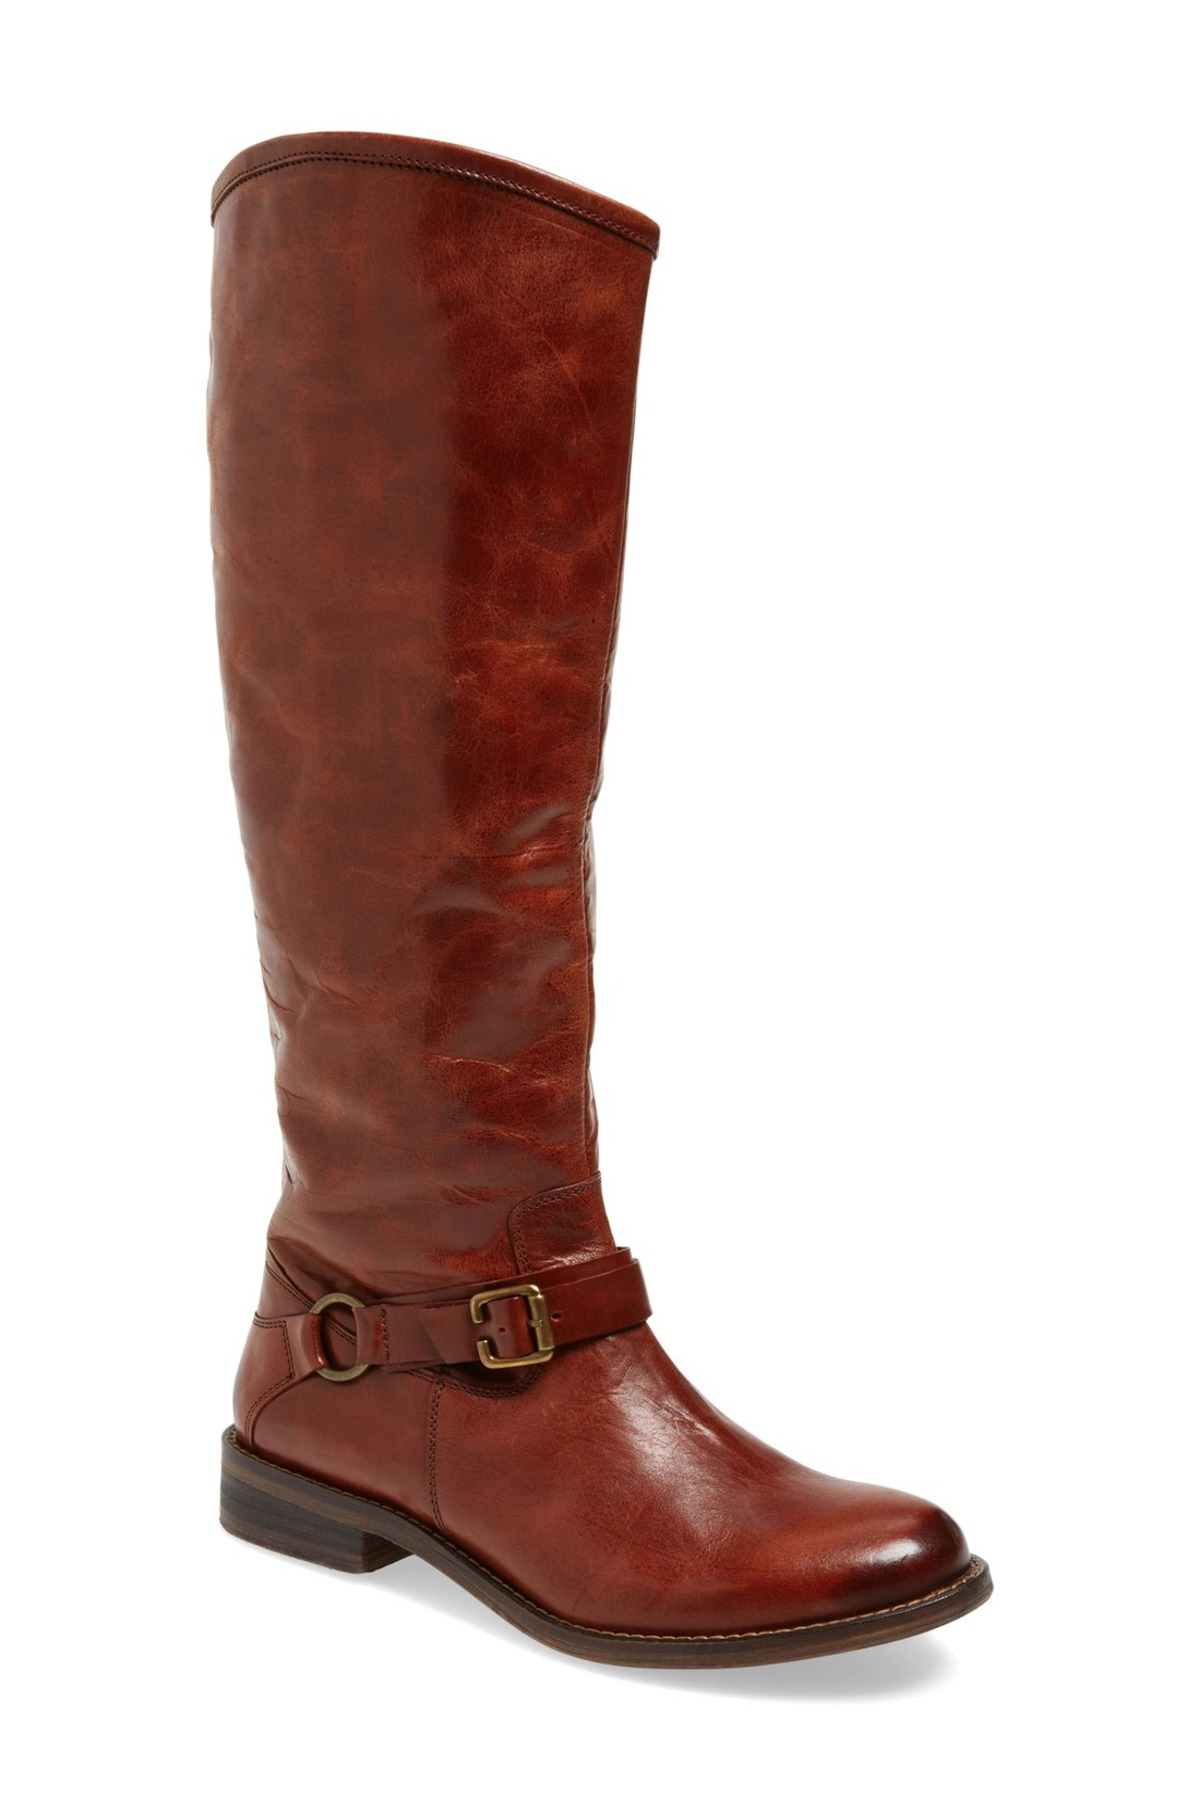 8859c519287 Lyst - Hinge  dakotah  Knee High Riding Boot (women) in Brown